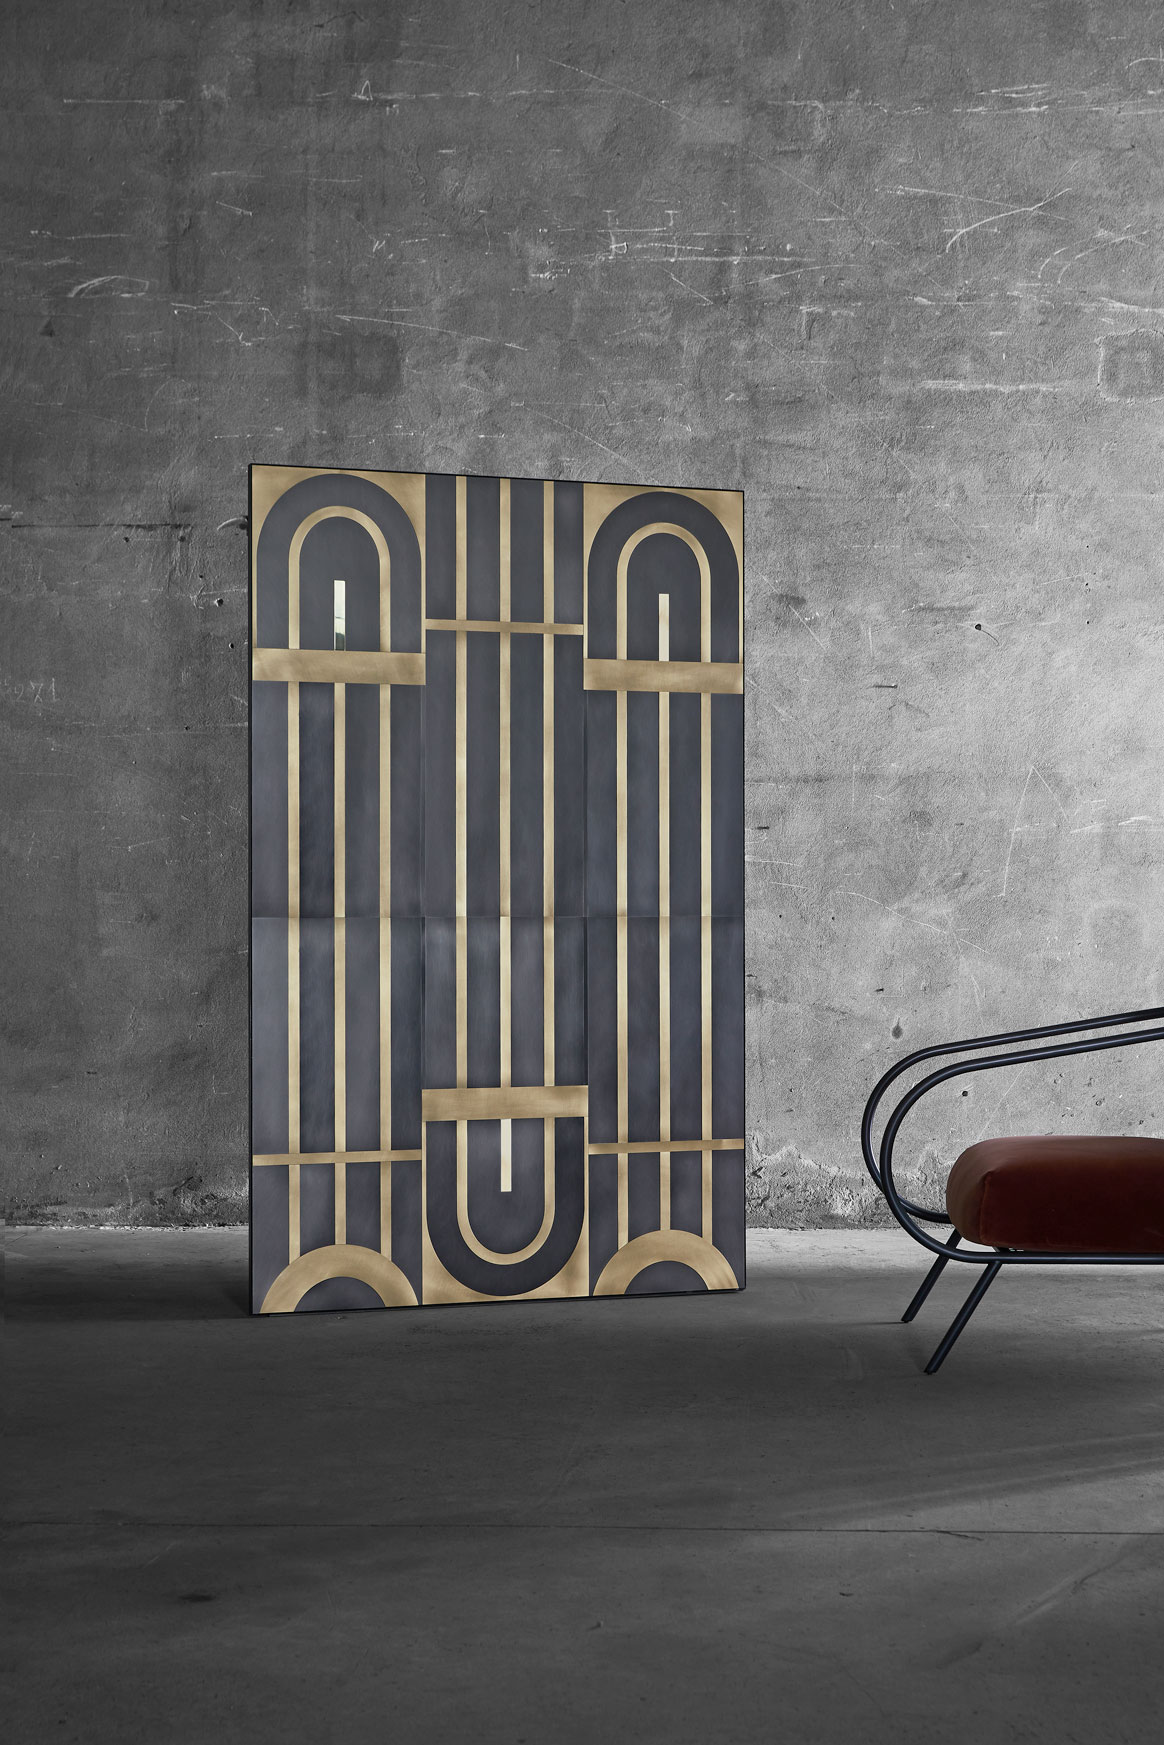 Gatsby for Mingardo  2018    Wall cladding inspired by the gates of the 1930s historical Milanese palaces. A continuous design, adaptable to any size, ideal for hotels, boutiques and large entrances in general.  The cladding works on different planes, to emphasize its forms and highlight the decoration.